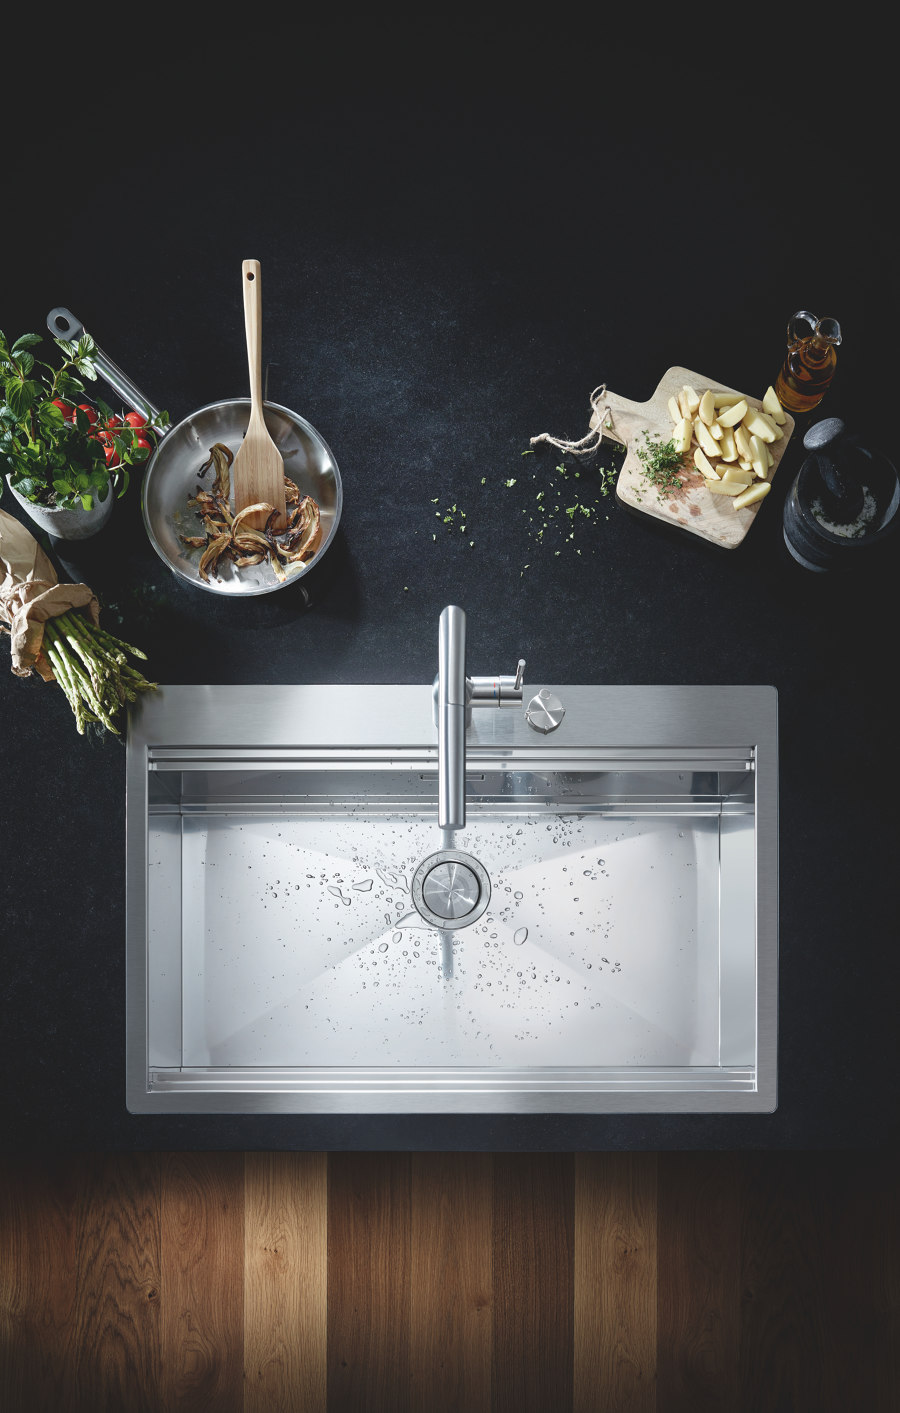 Let it sink in: GROHE | Novedades